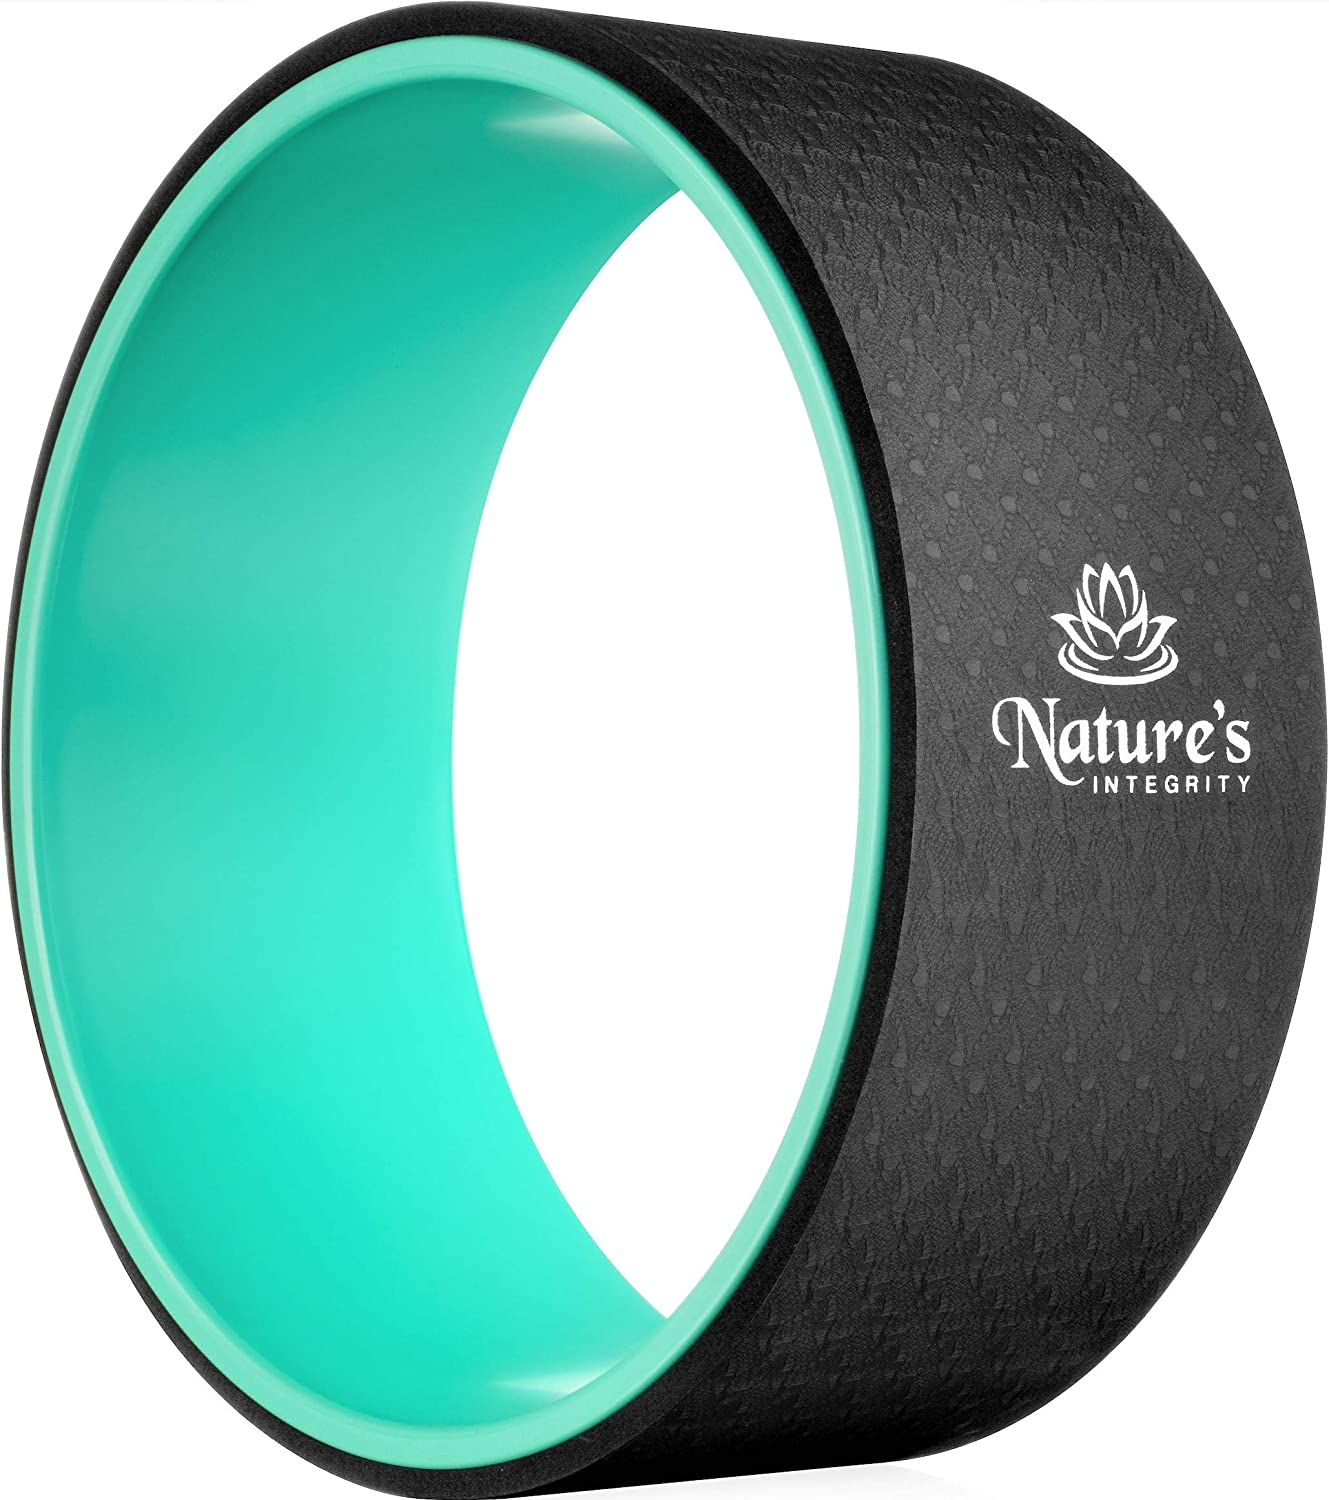 """Nature's Integrity Yoga Wheel 13"""" [Elite Series] - for Stretching, Back Pain, Improving Backbends - Dharma Yoga Circle Ring, Back Stretcher, Spine Roller - Eco-Friendly - Bonus Pose Guide Included"""